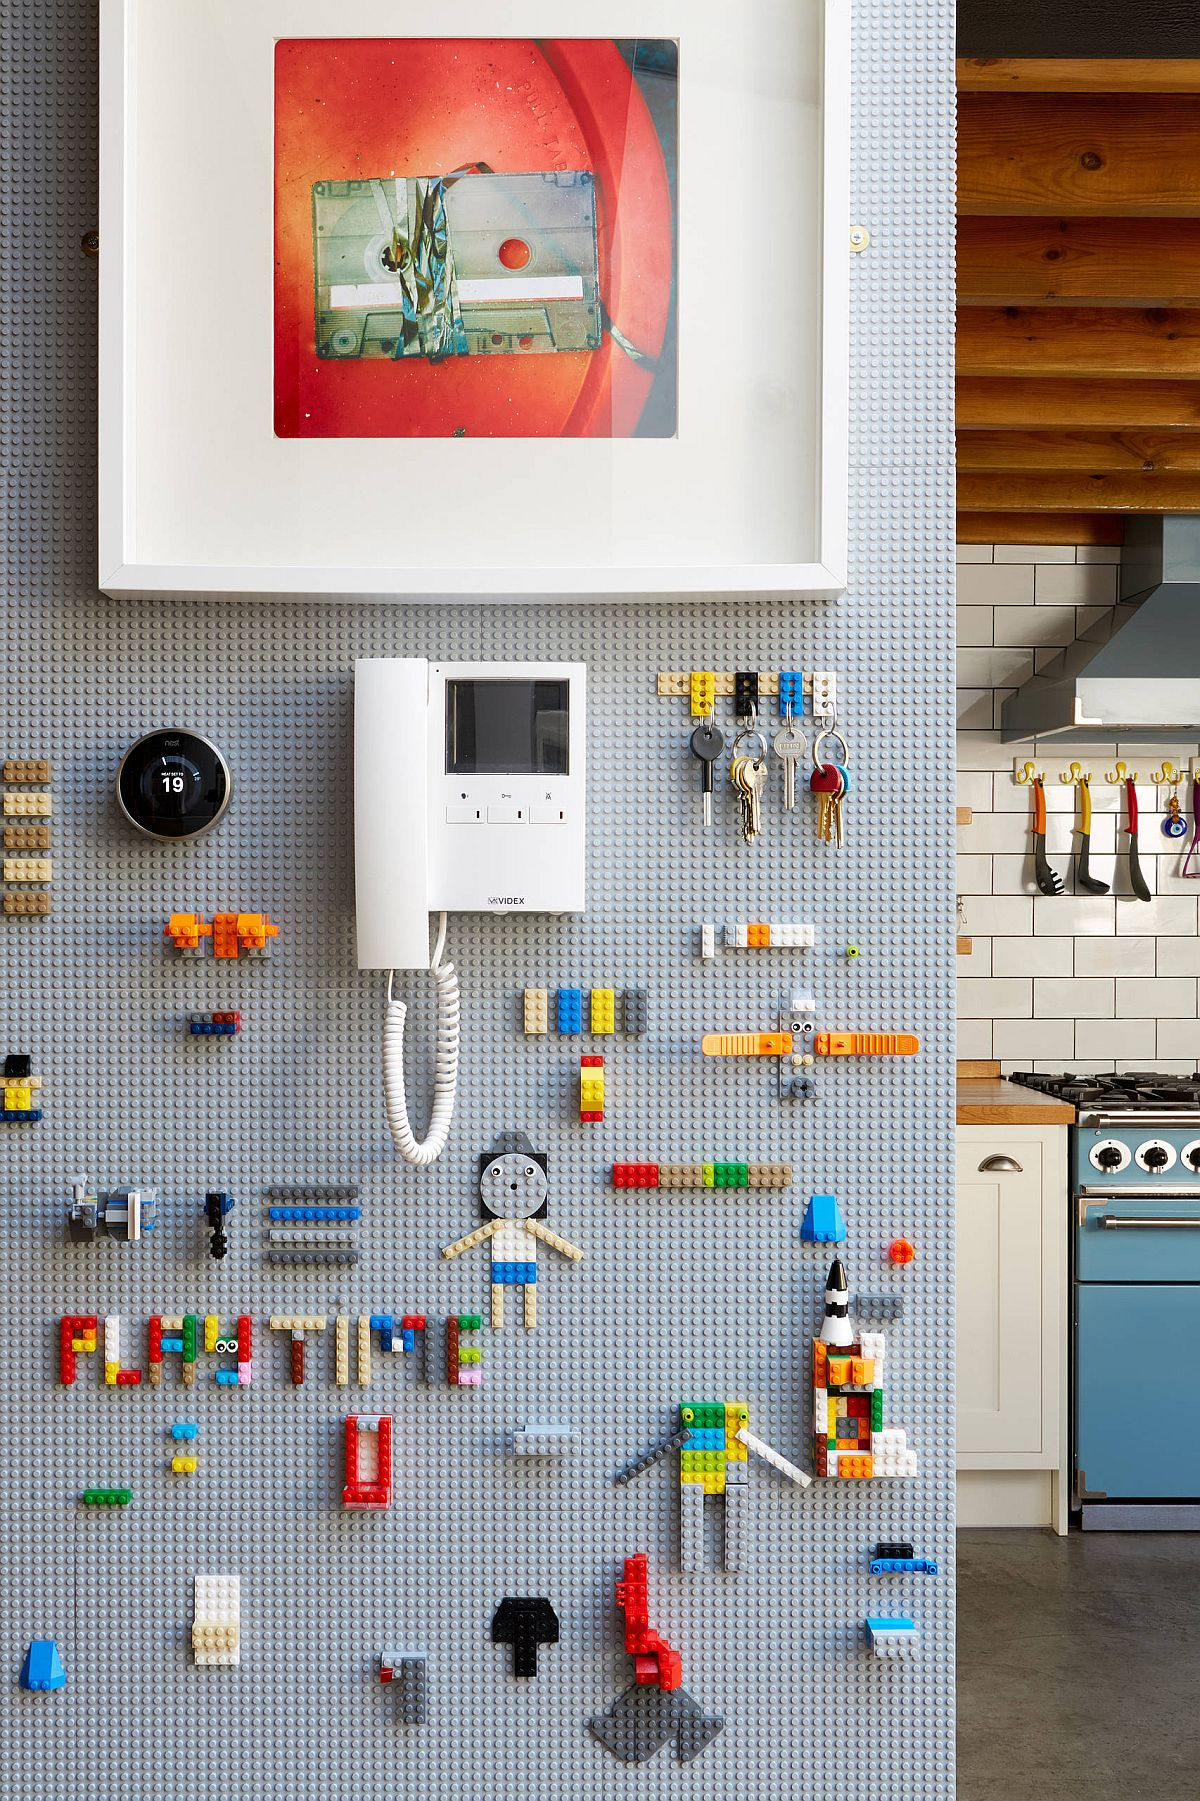 Using a pegboard wall to store smaller toys and accessories in the kids' room